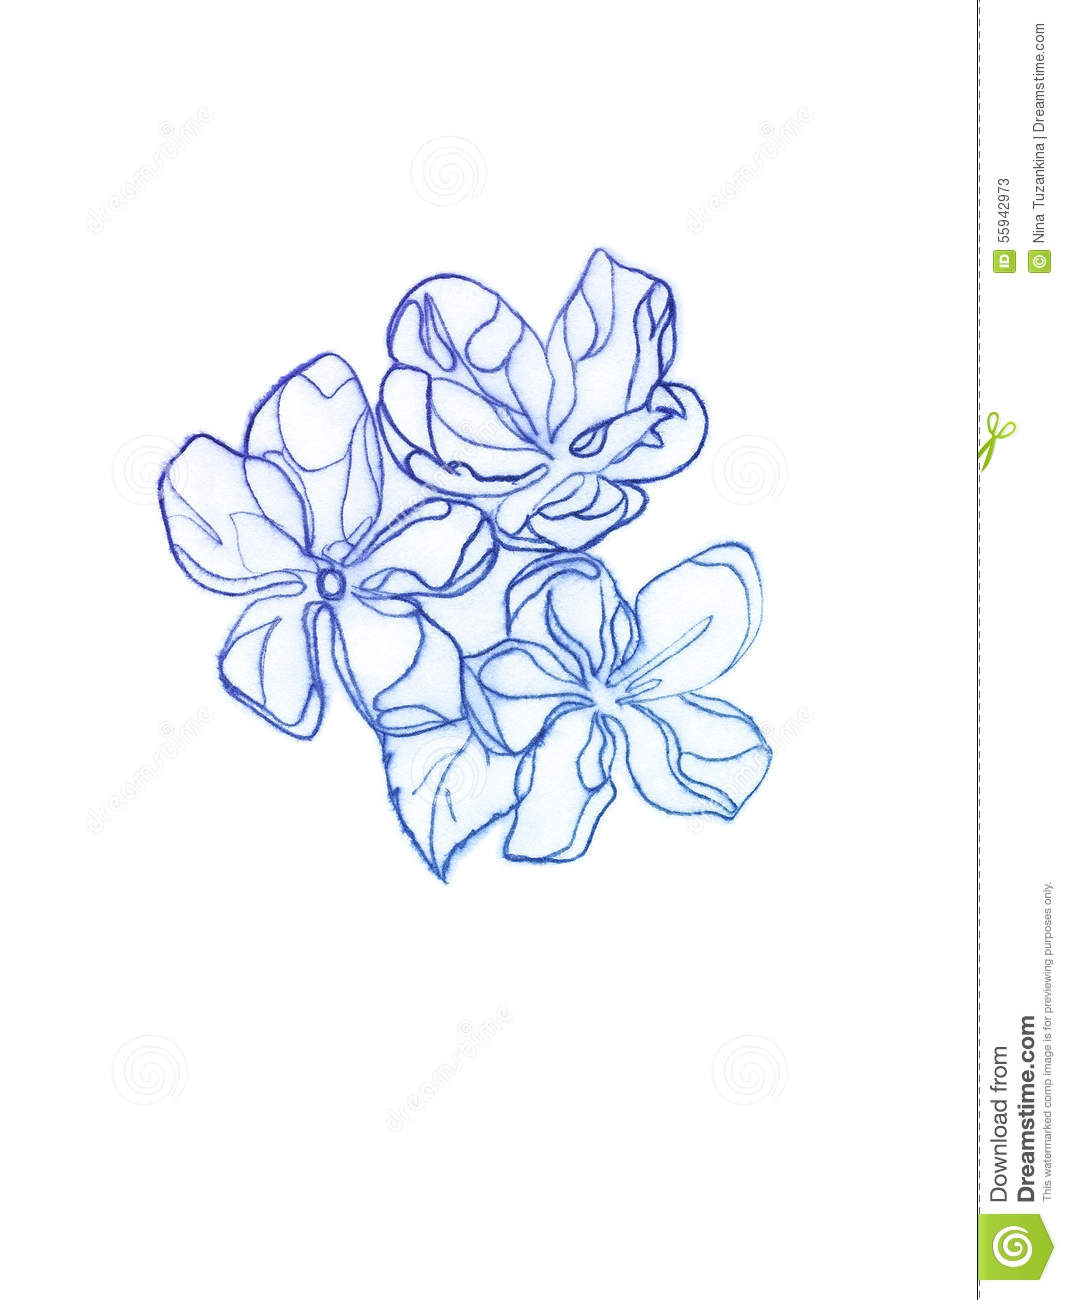 Spring flowers drawing with copying pencil stock illustration spring flowers drawing with copying pencil mightylinksfo